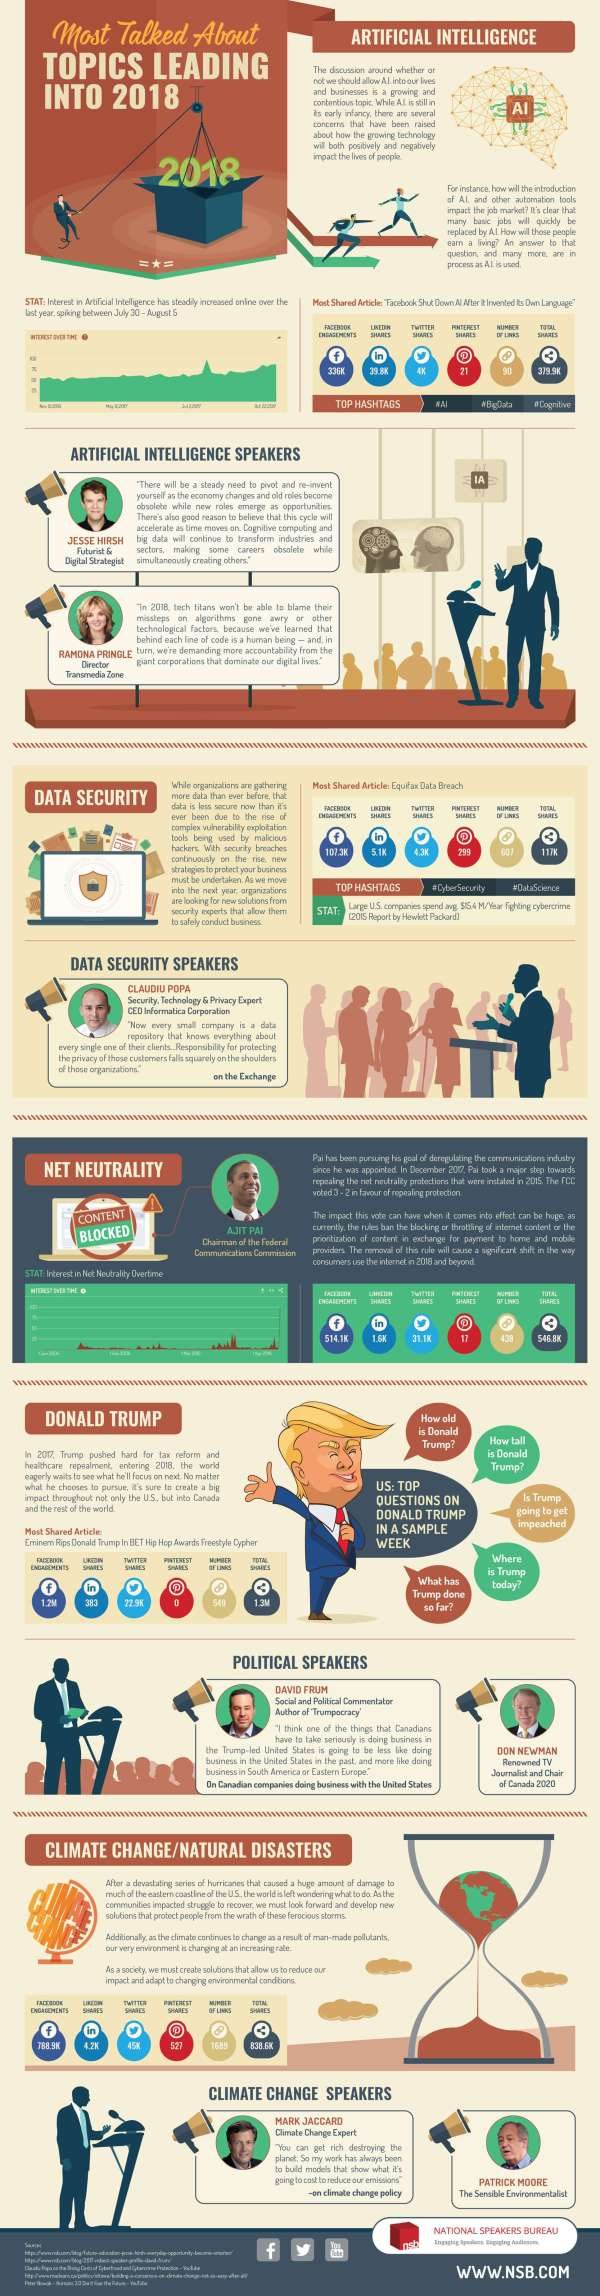 Most-talked-about-topics-leading-into-2018-infographic-galleryr